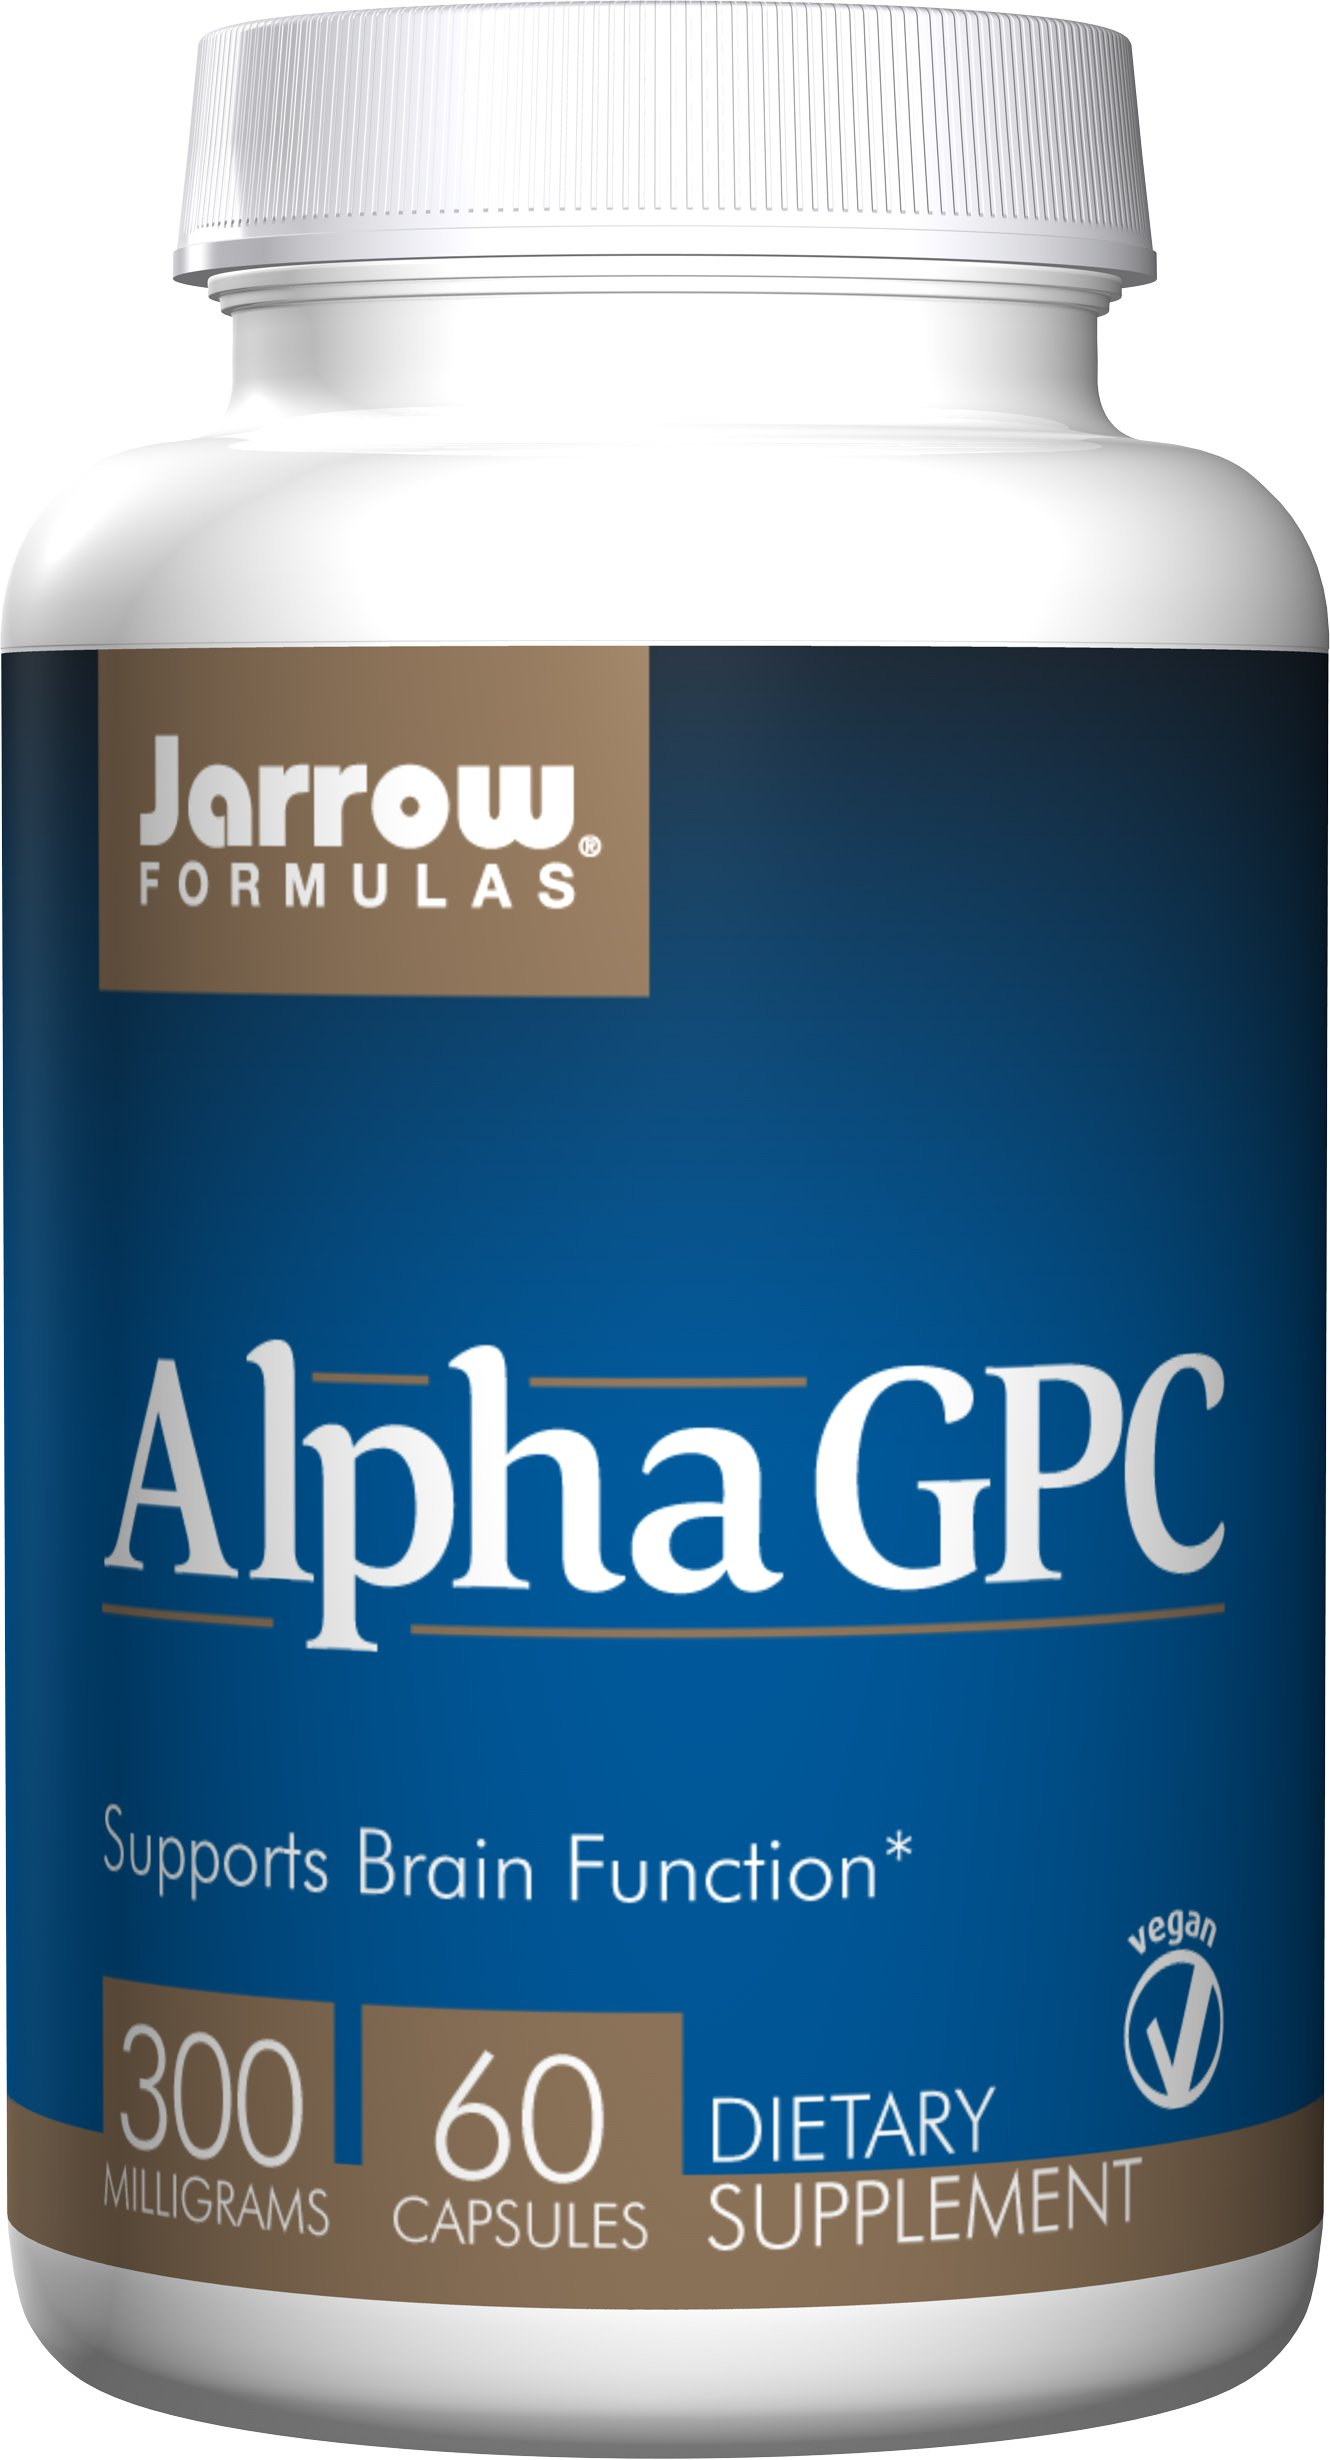 Jarrow Formulas - Alpha GPC 300 mg 60 vcaps (Pack of 6)